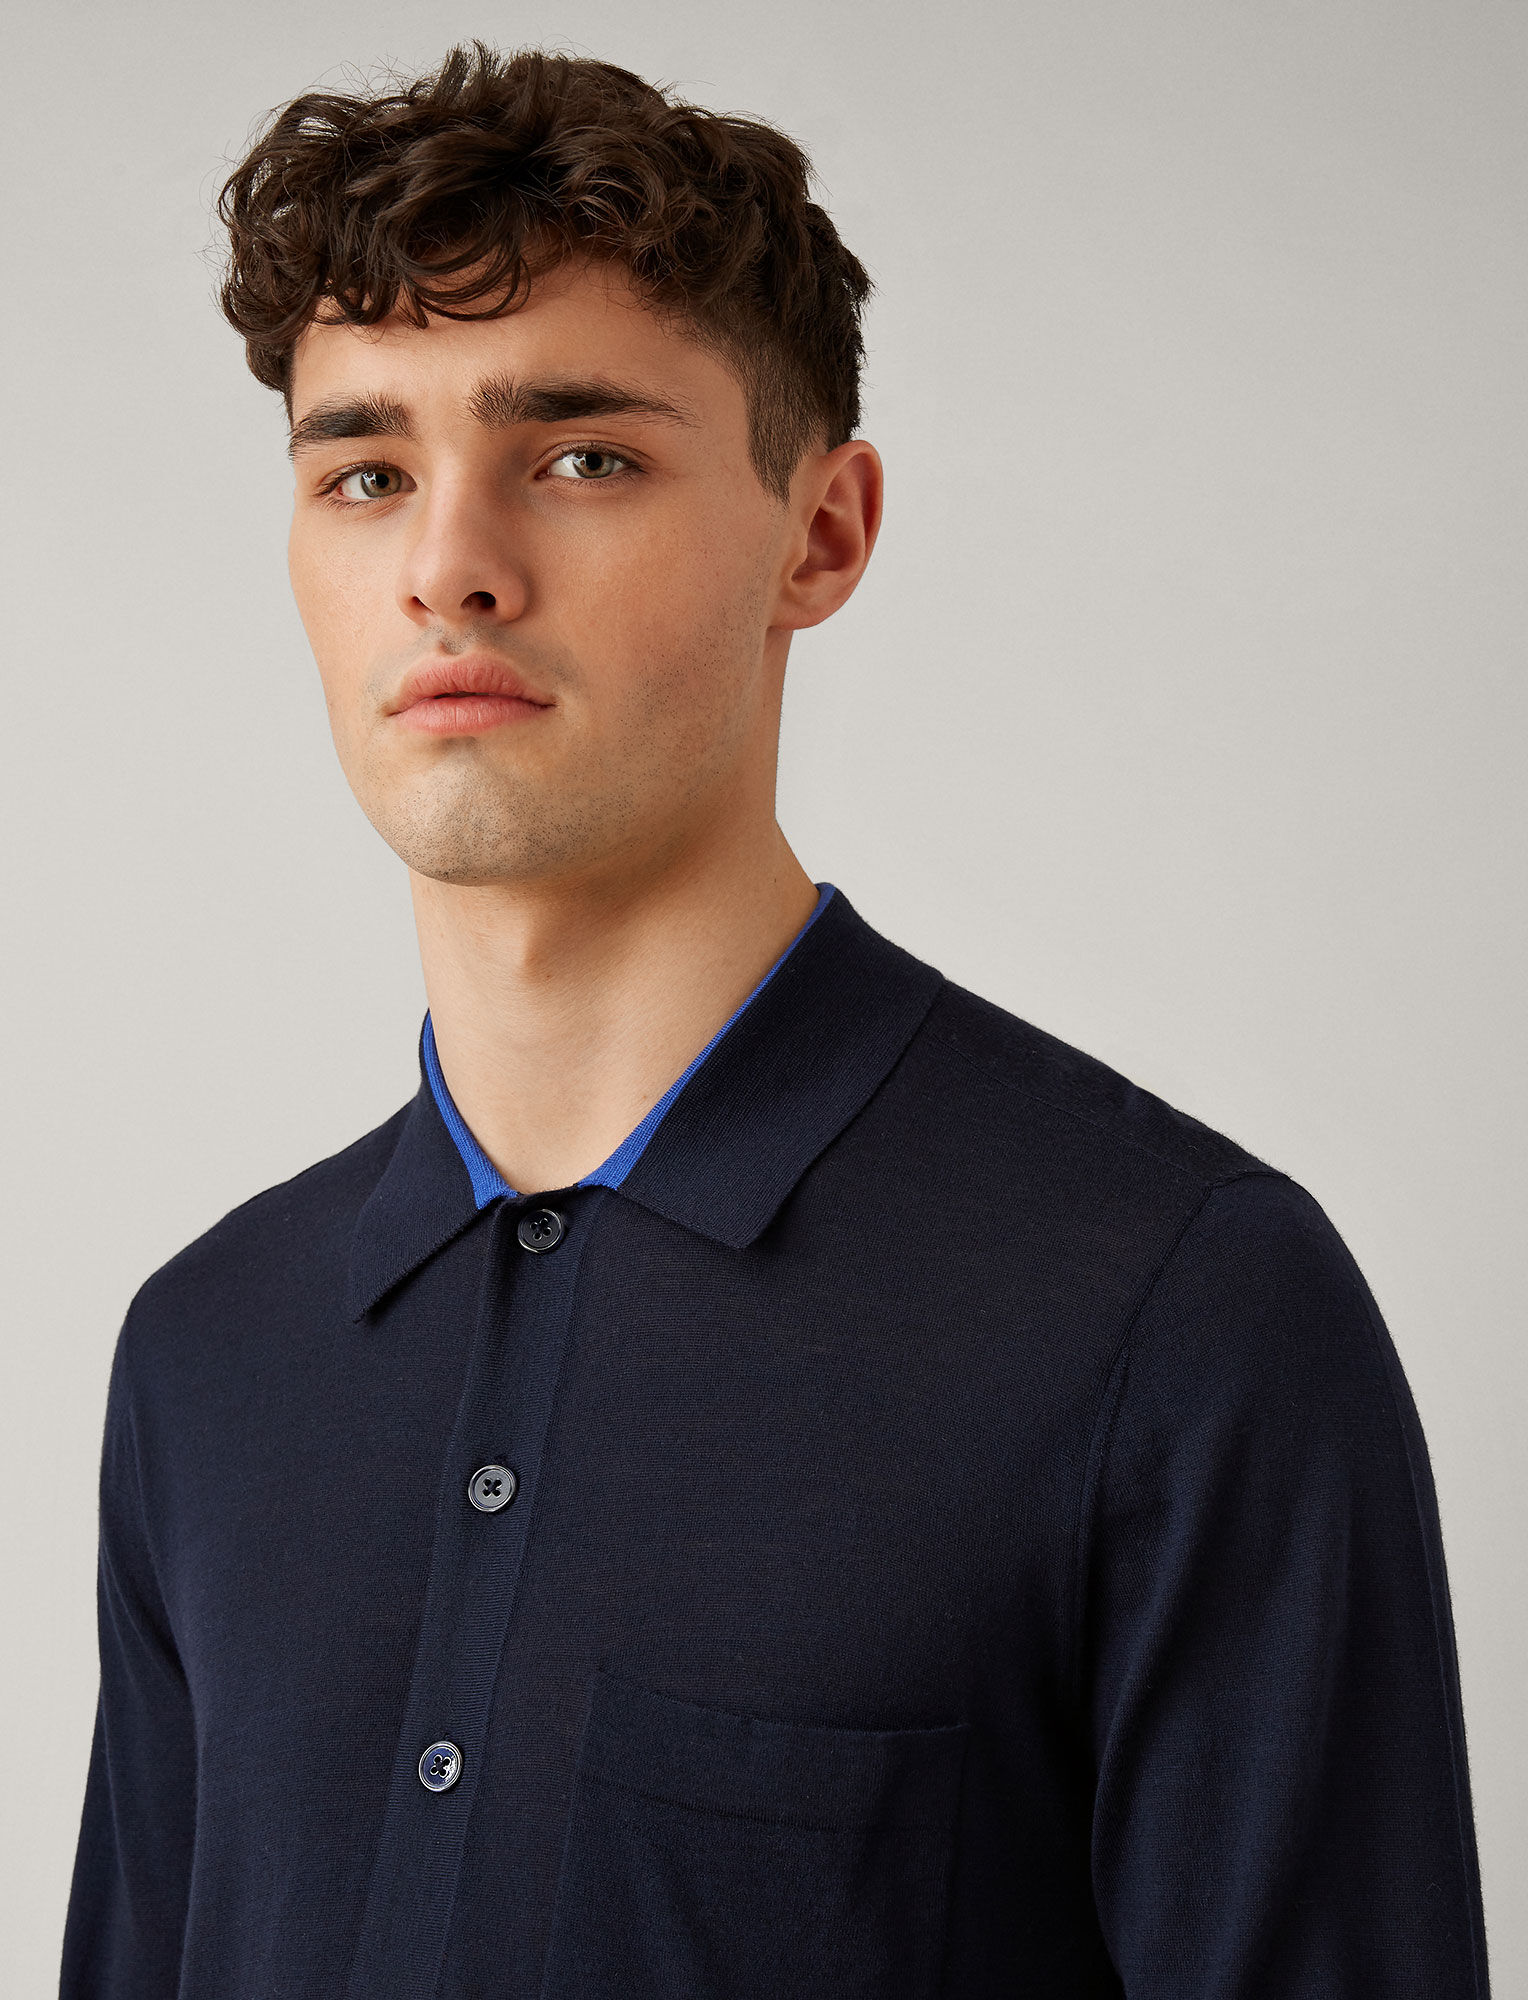 Joseph, Light Merinos Knit Shirt, in NAVY